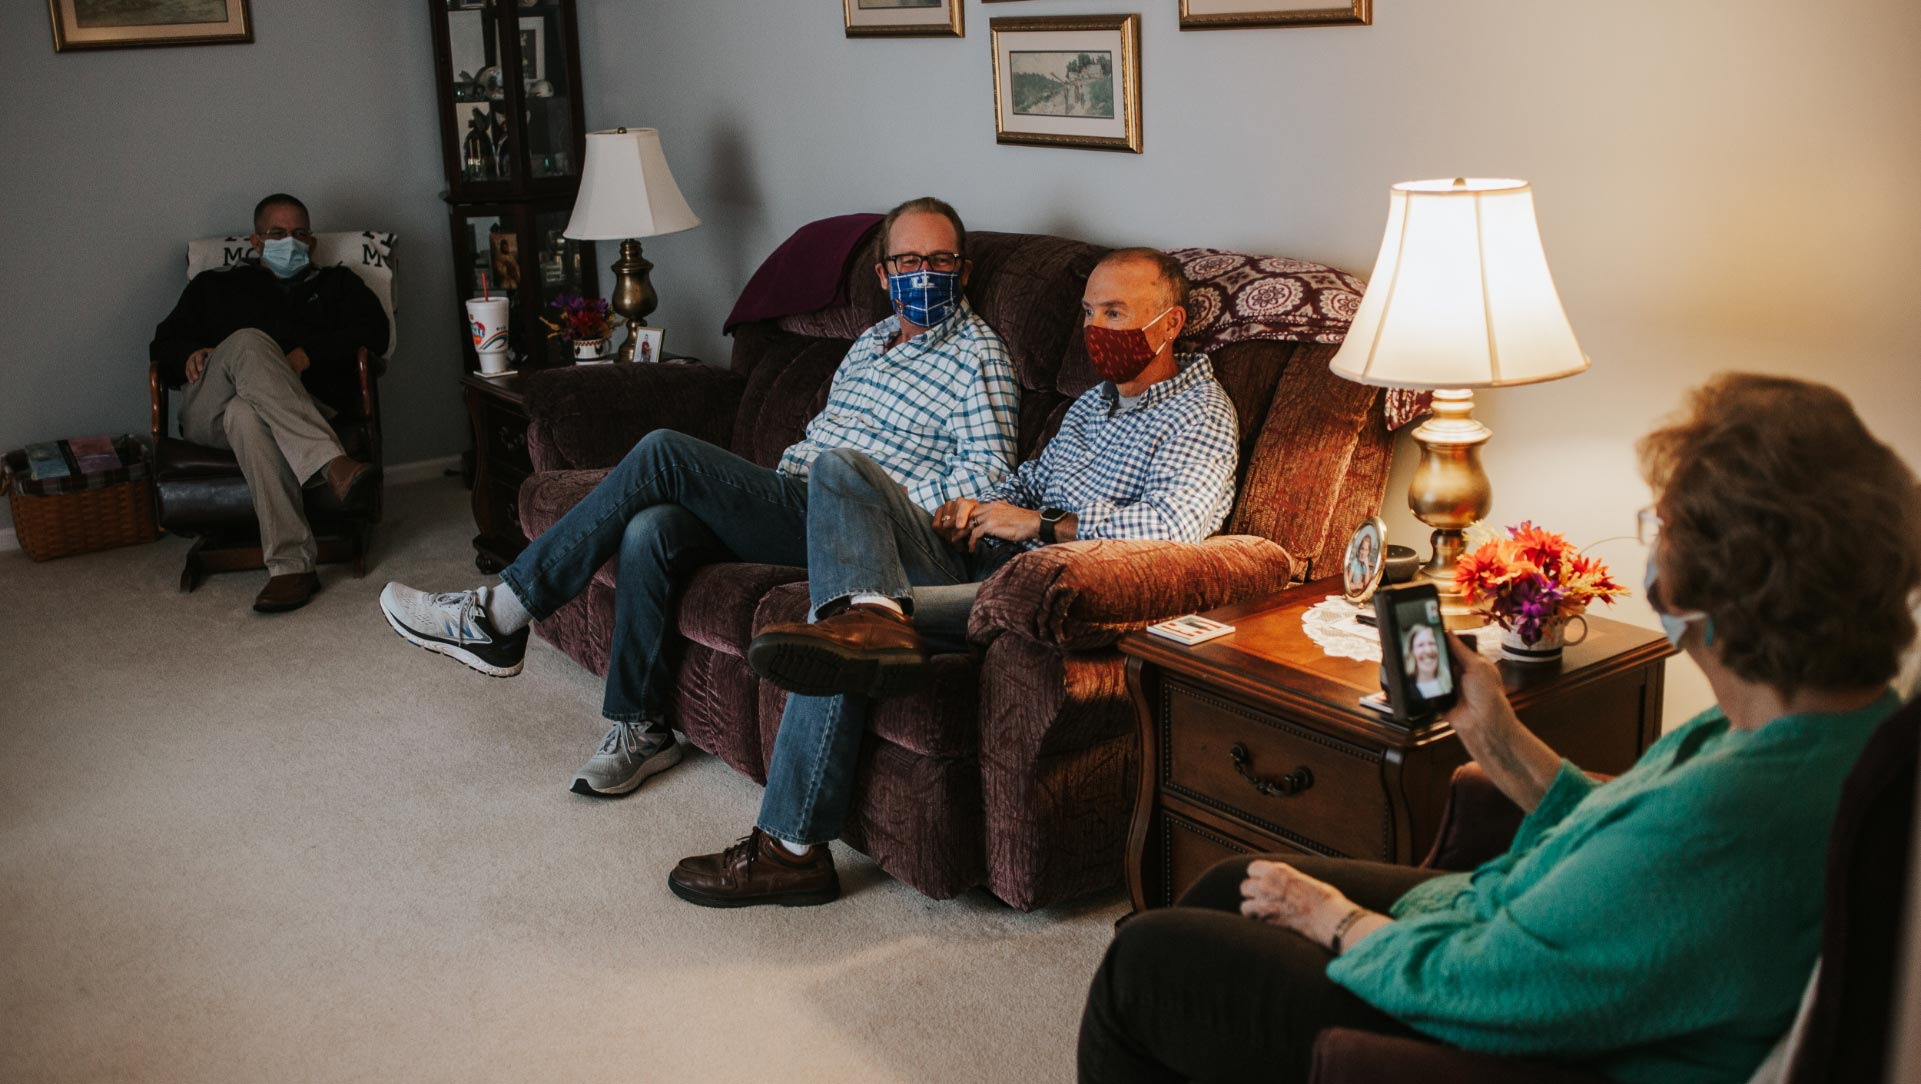 Mae sits on a single couch with her facemask, on a video call with her daughter-in-law, a young white woman with a big smile. Spread across the room are three middle-aged men sitting cross-legged with their facemasks on.